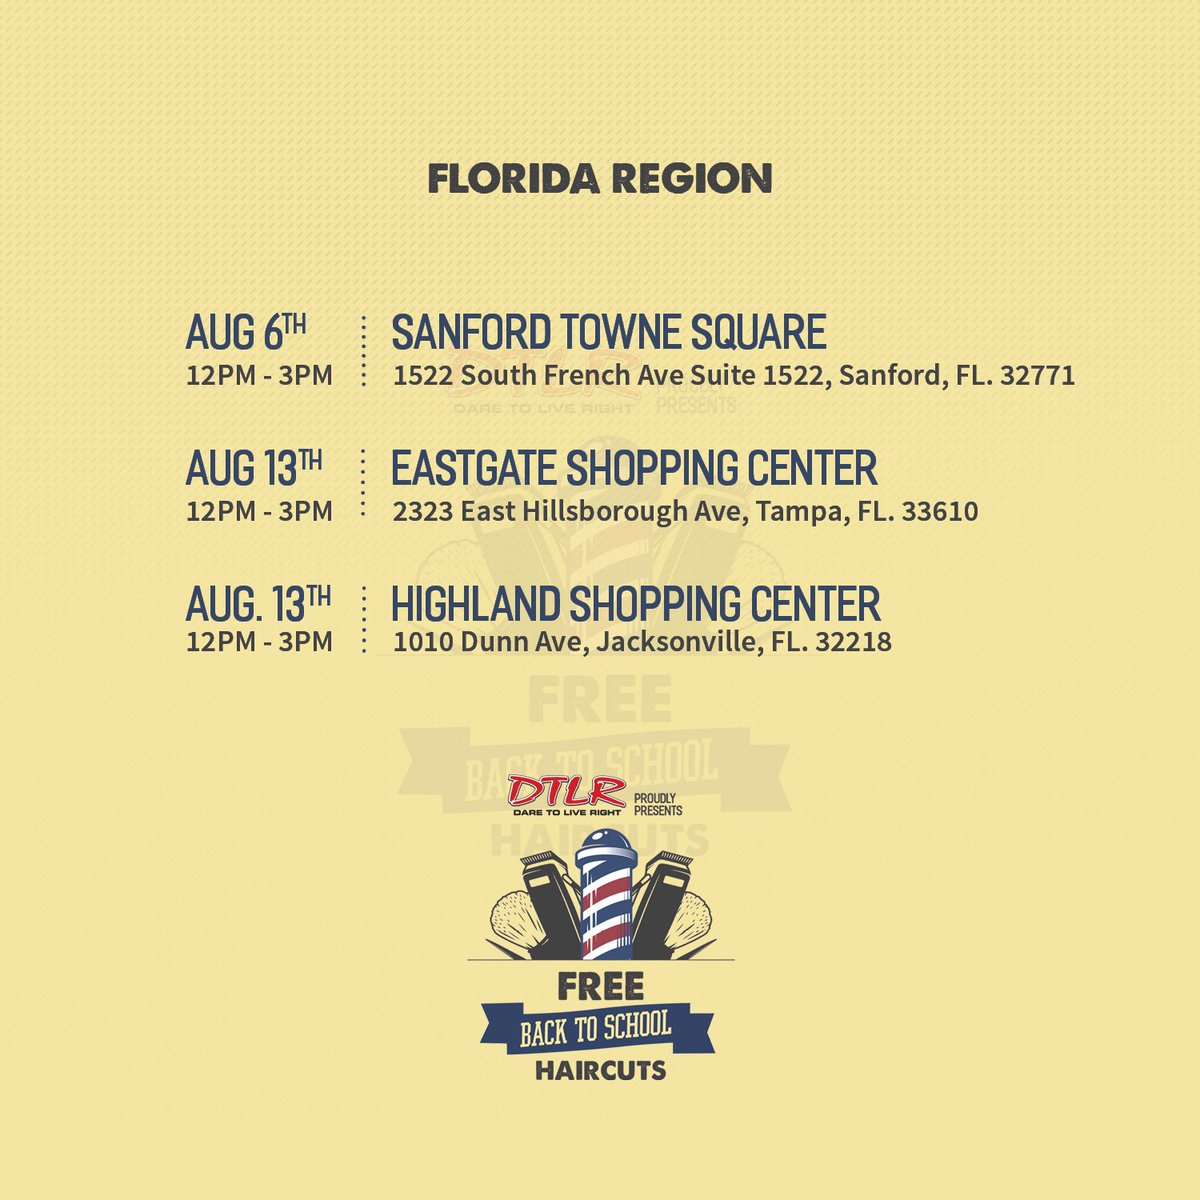 #FL Time to get ready for school! Bring the kids by #DTLR for a #FREE haircut TODAY DTLR-Sanford #Back2School #Haircuts #Daretoliveright https://t.co/9AJ9RbE7Oj